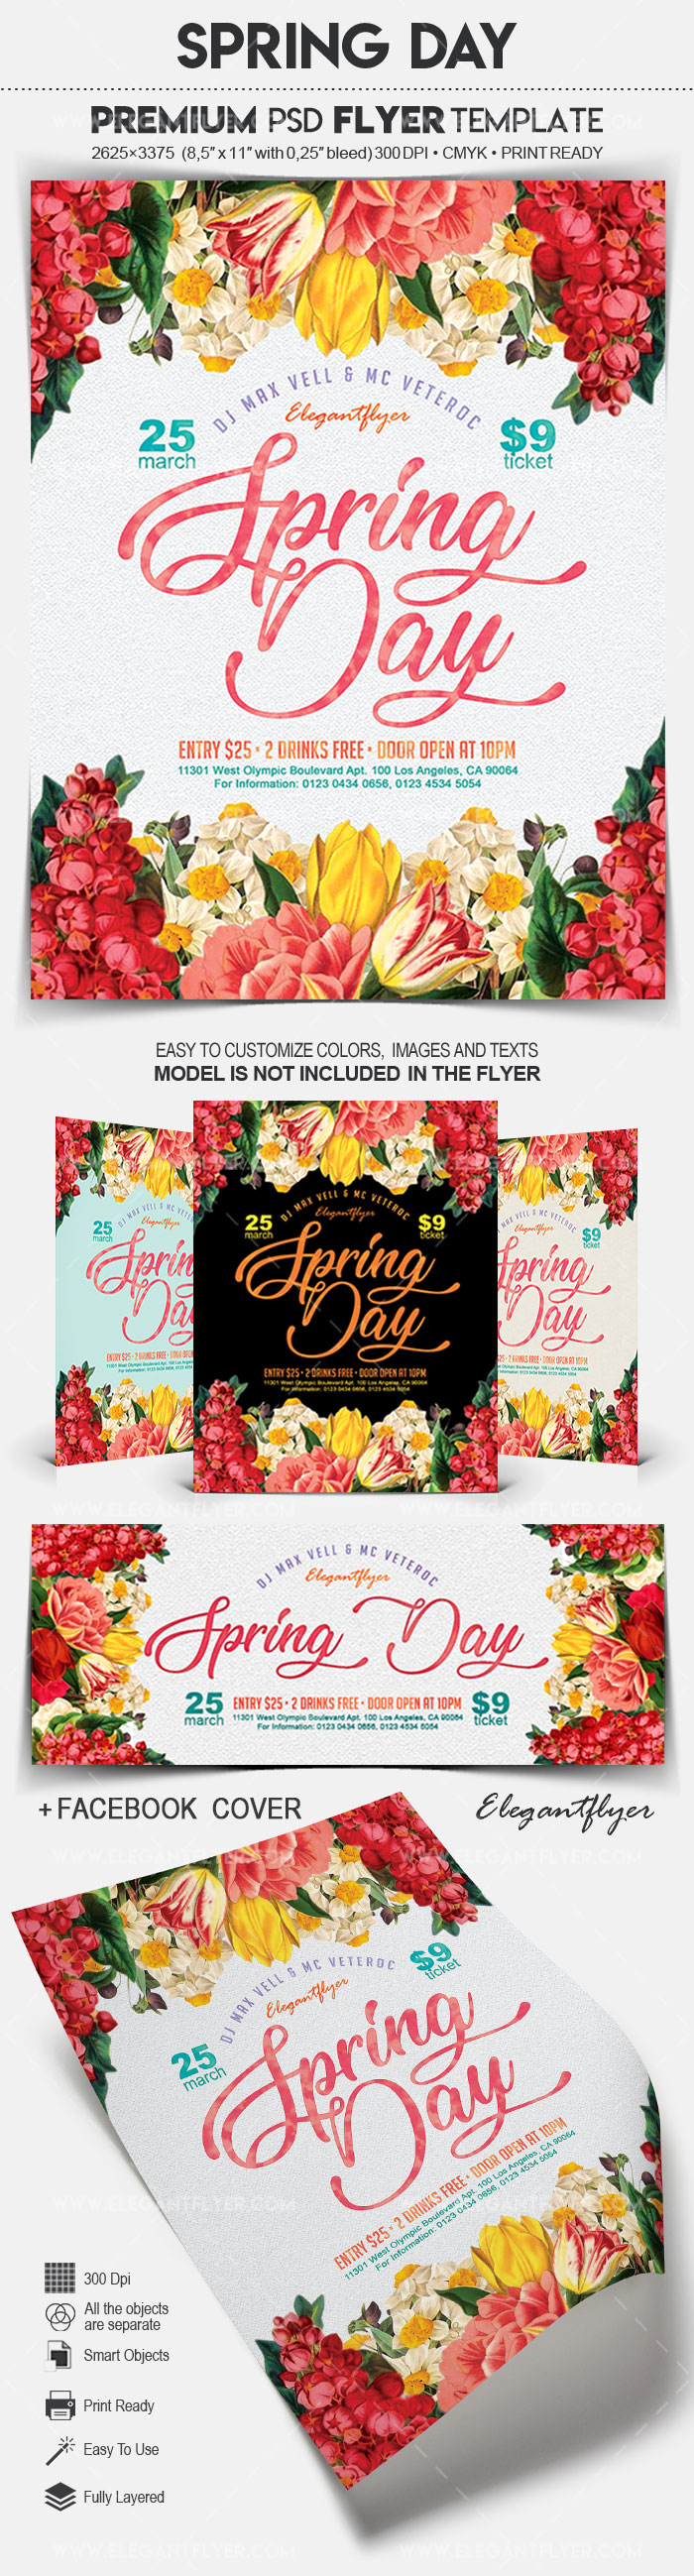 Spring Day – Flyer PSD Template